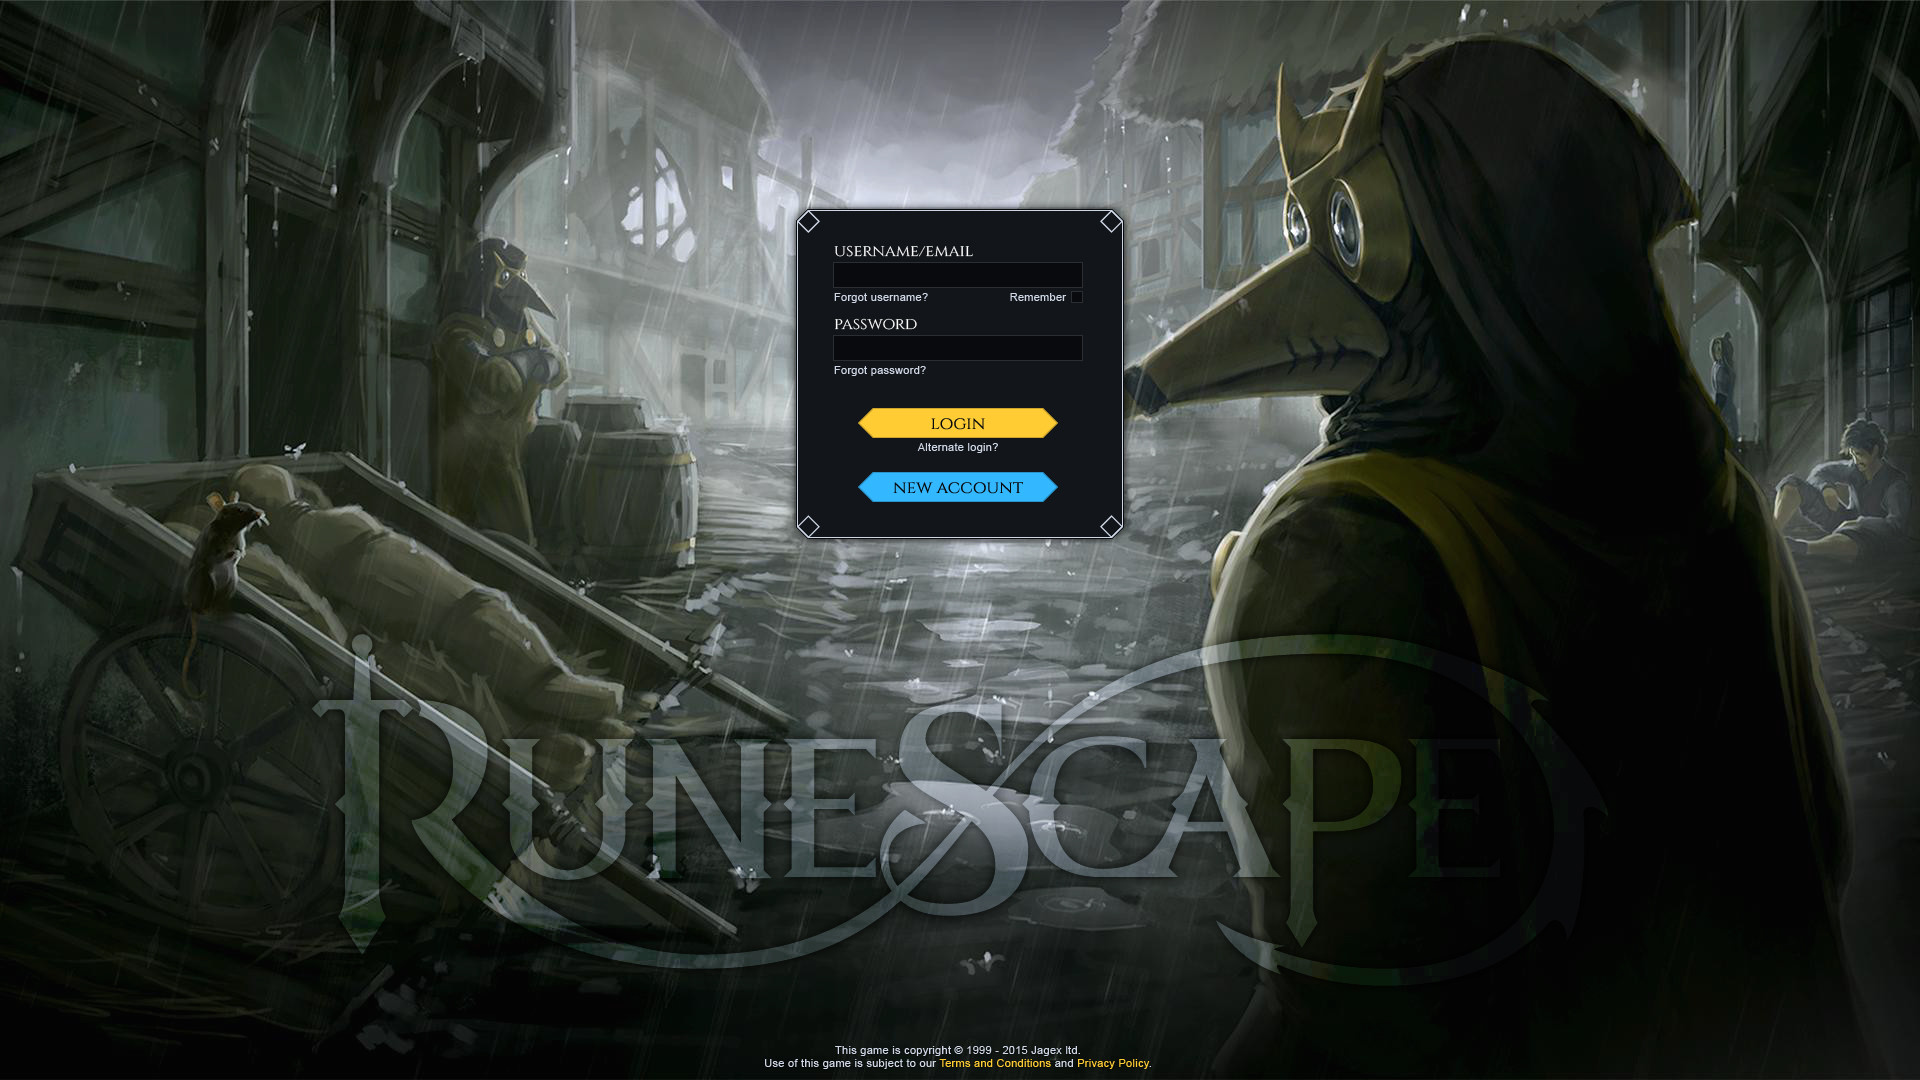 Here's an example of what I think the new login could look like.